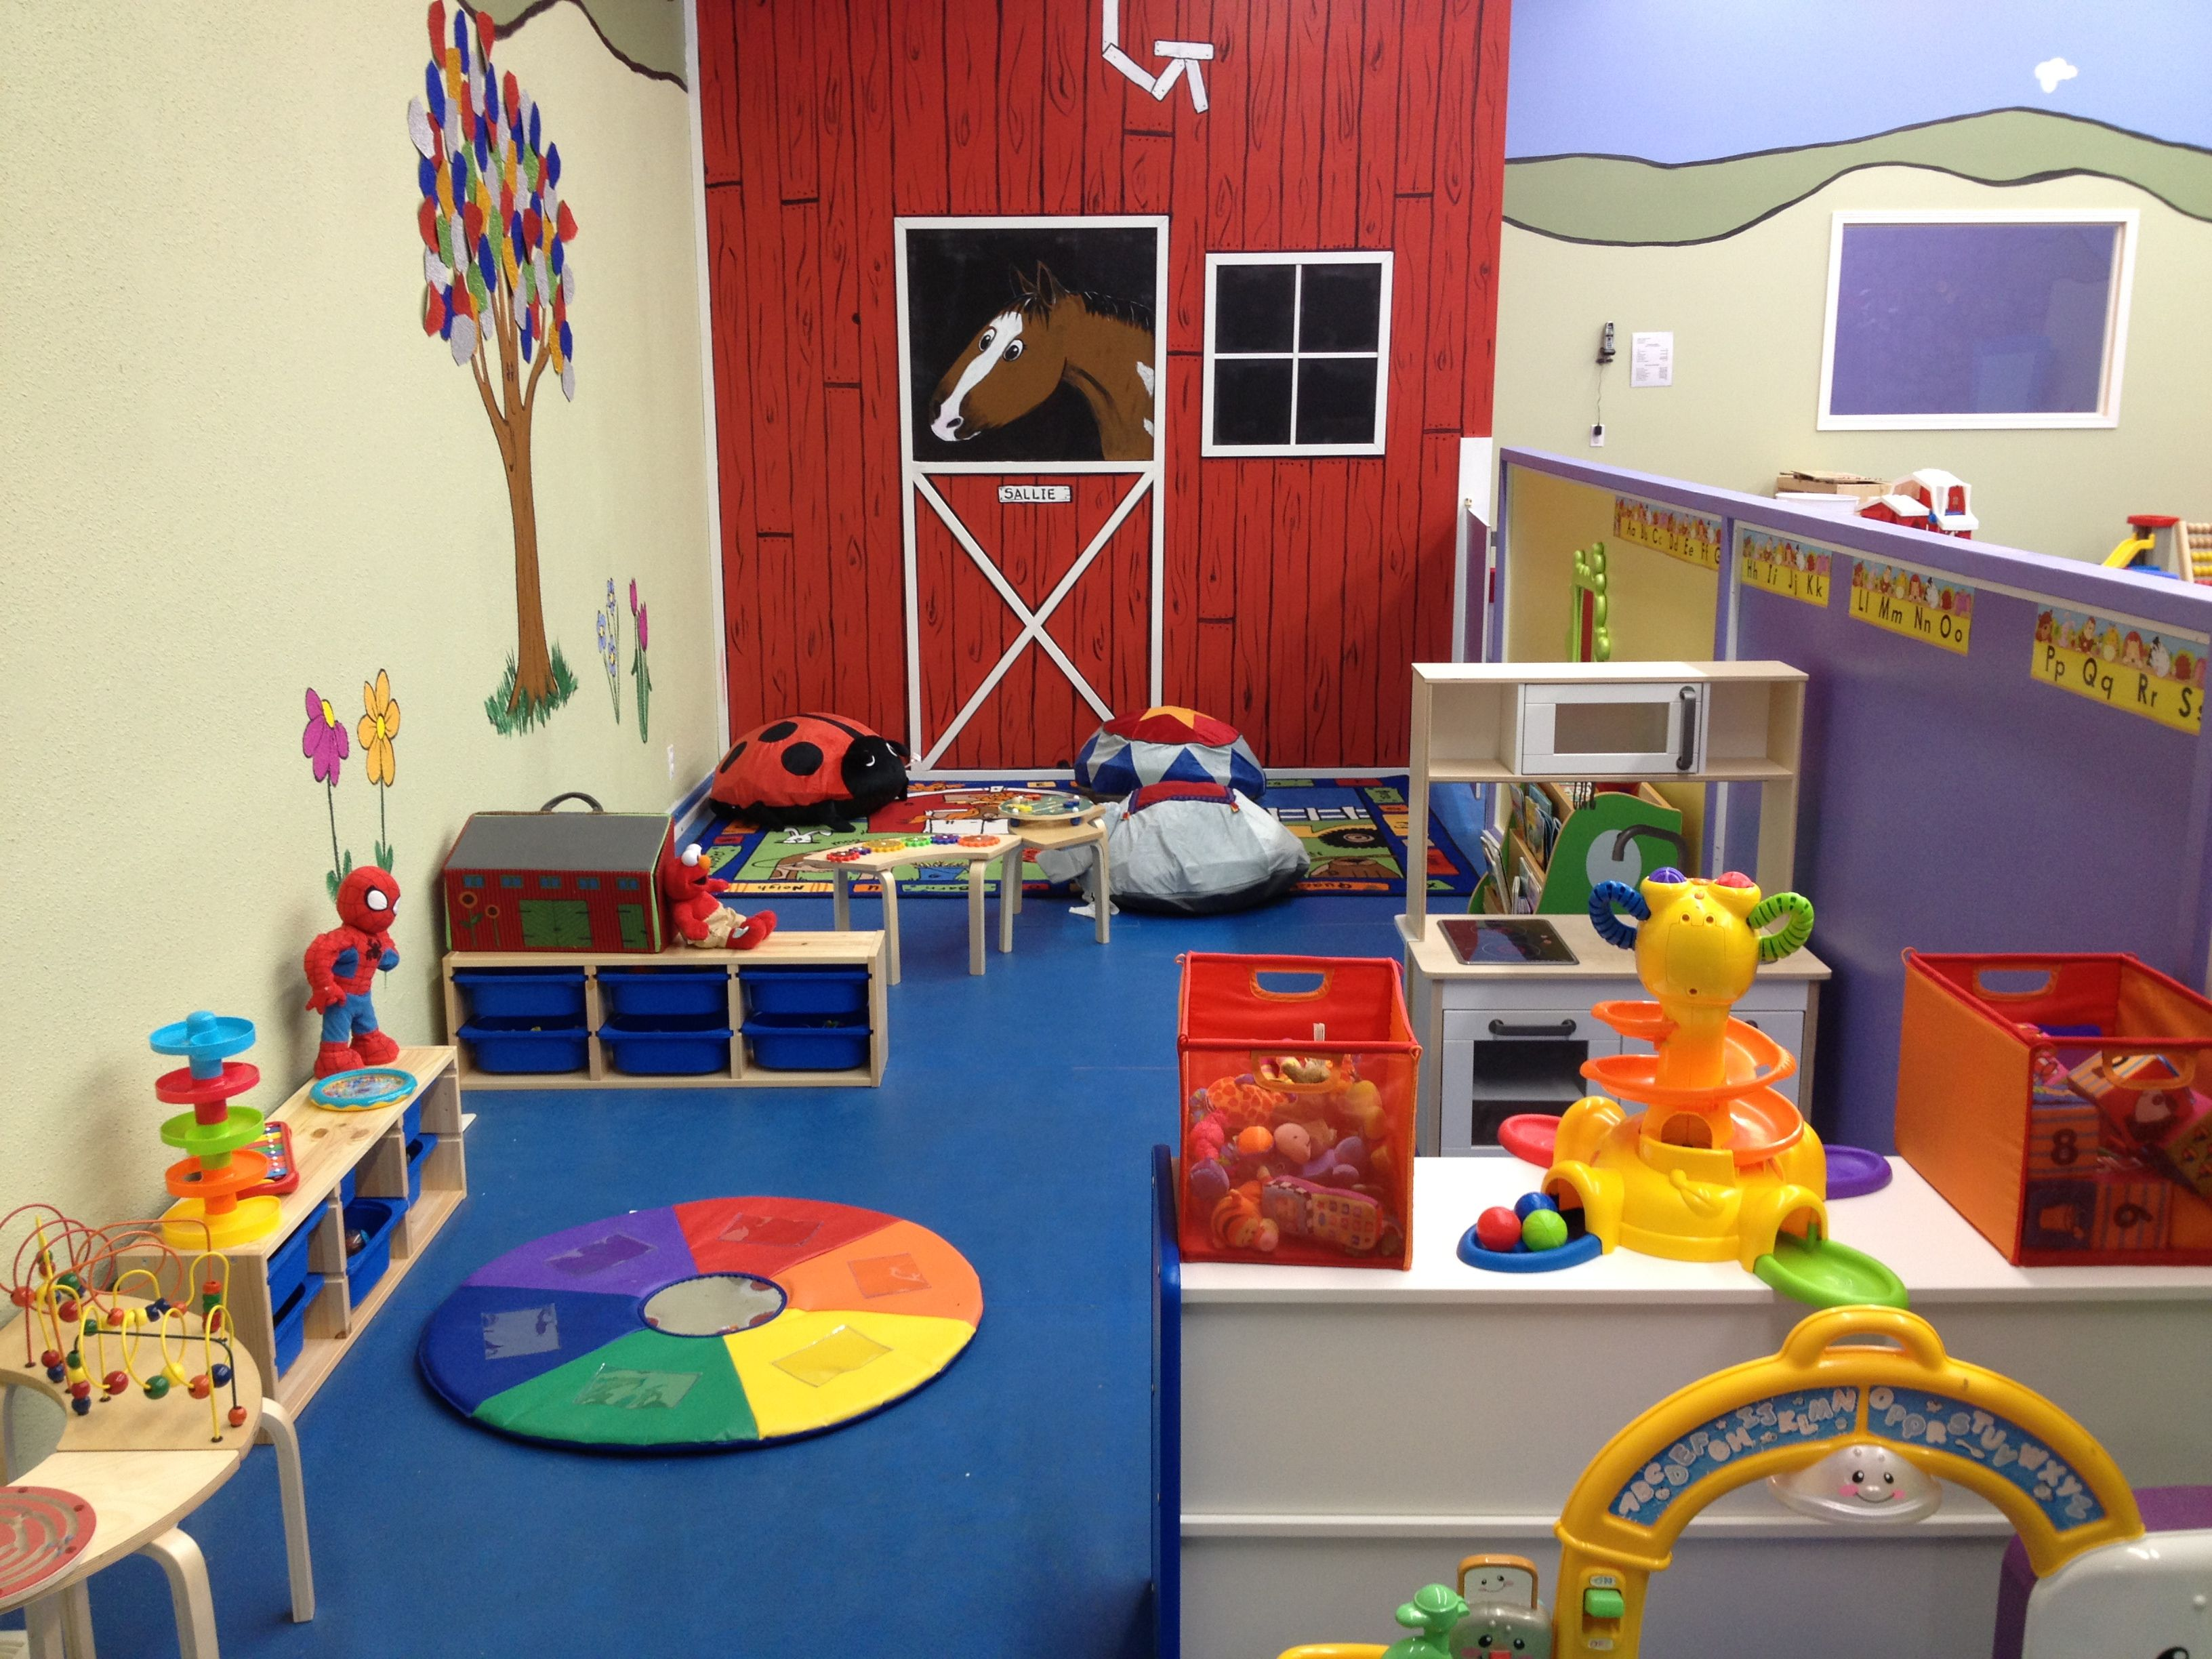 Half Walls To Separate Daycare From Preschool Good Idea Adults Can See Over The Top But Kids Cant Daycare Decor Daycare Design Infant Daycare